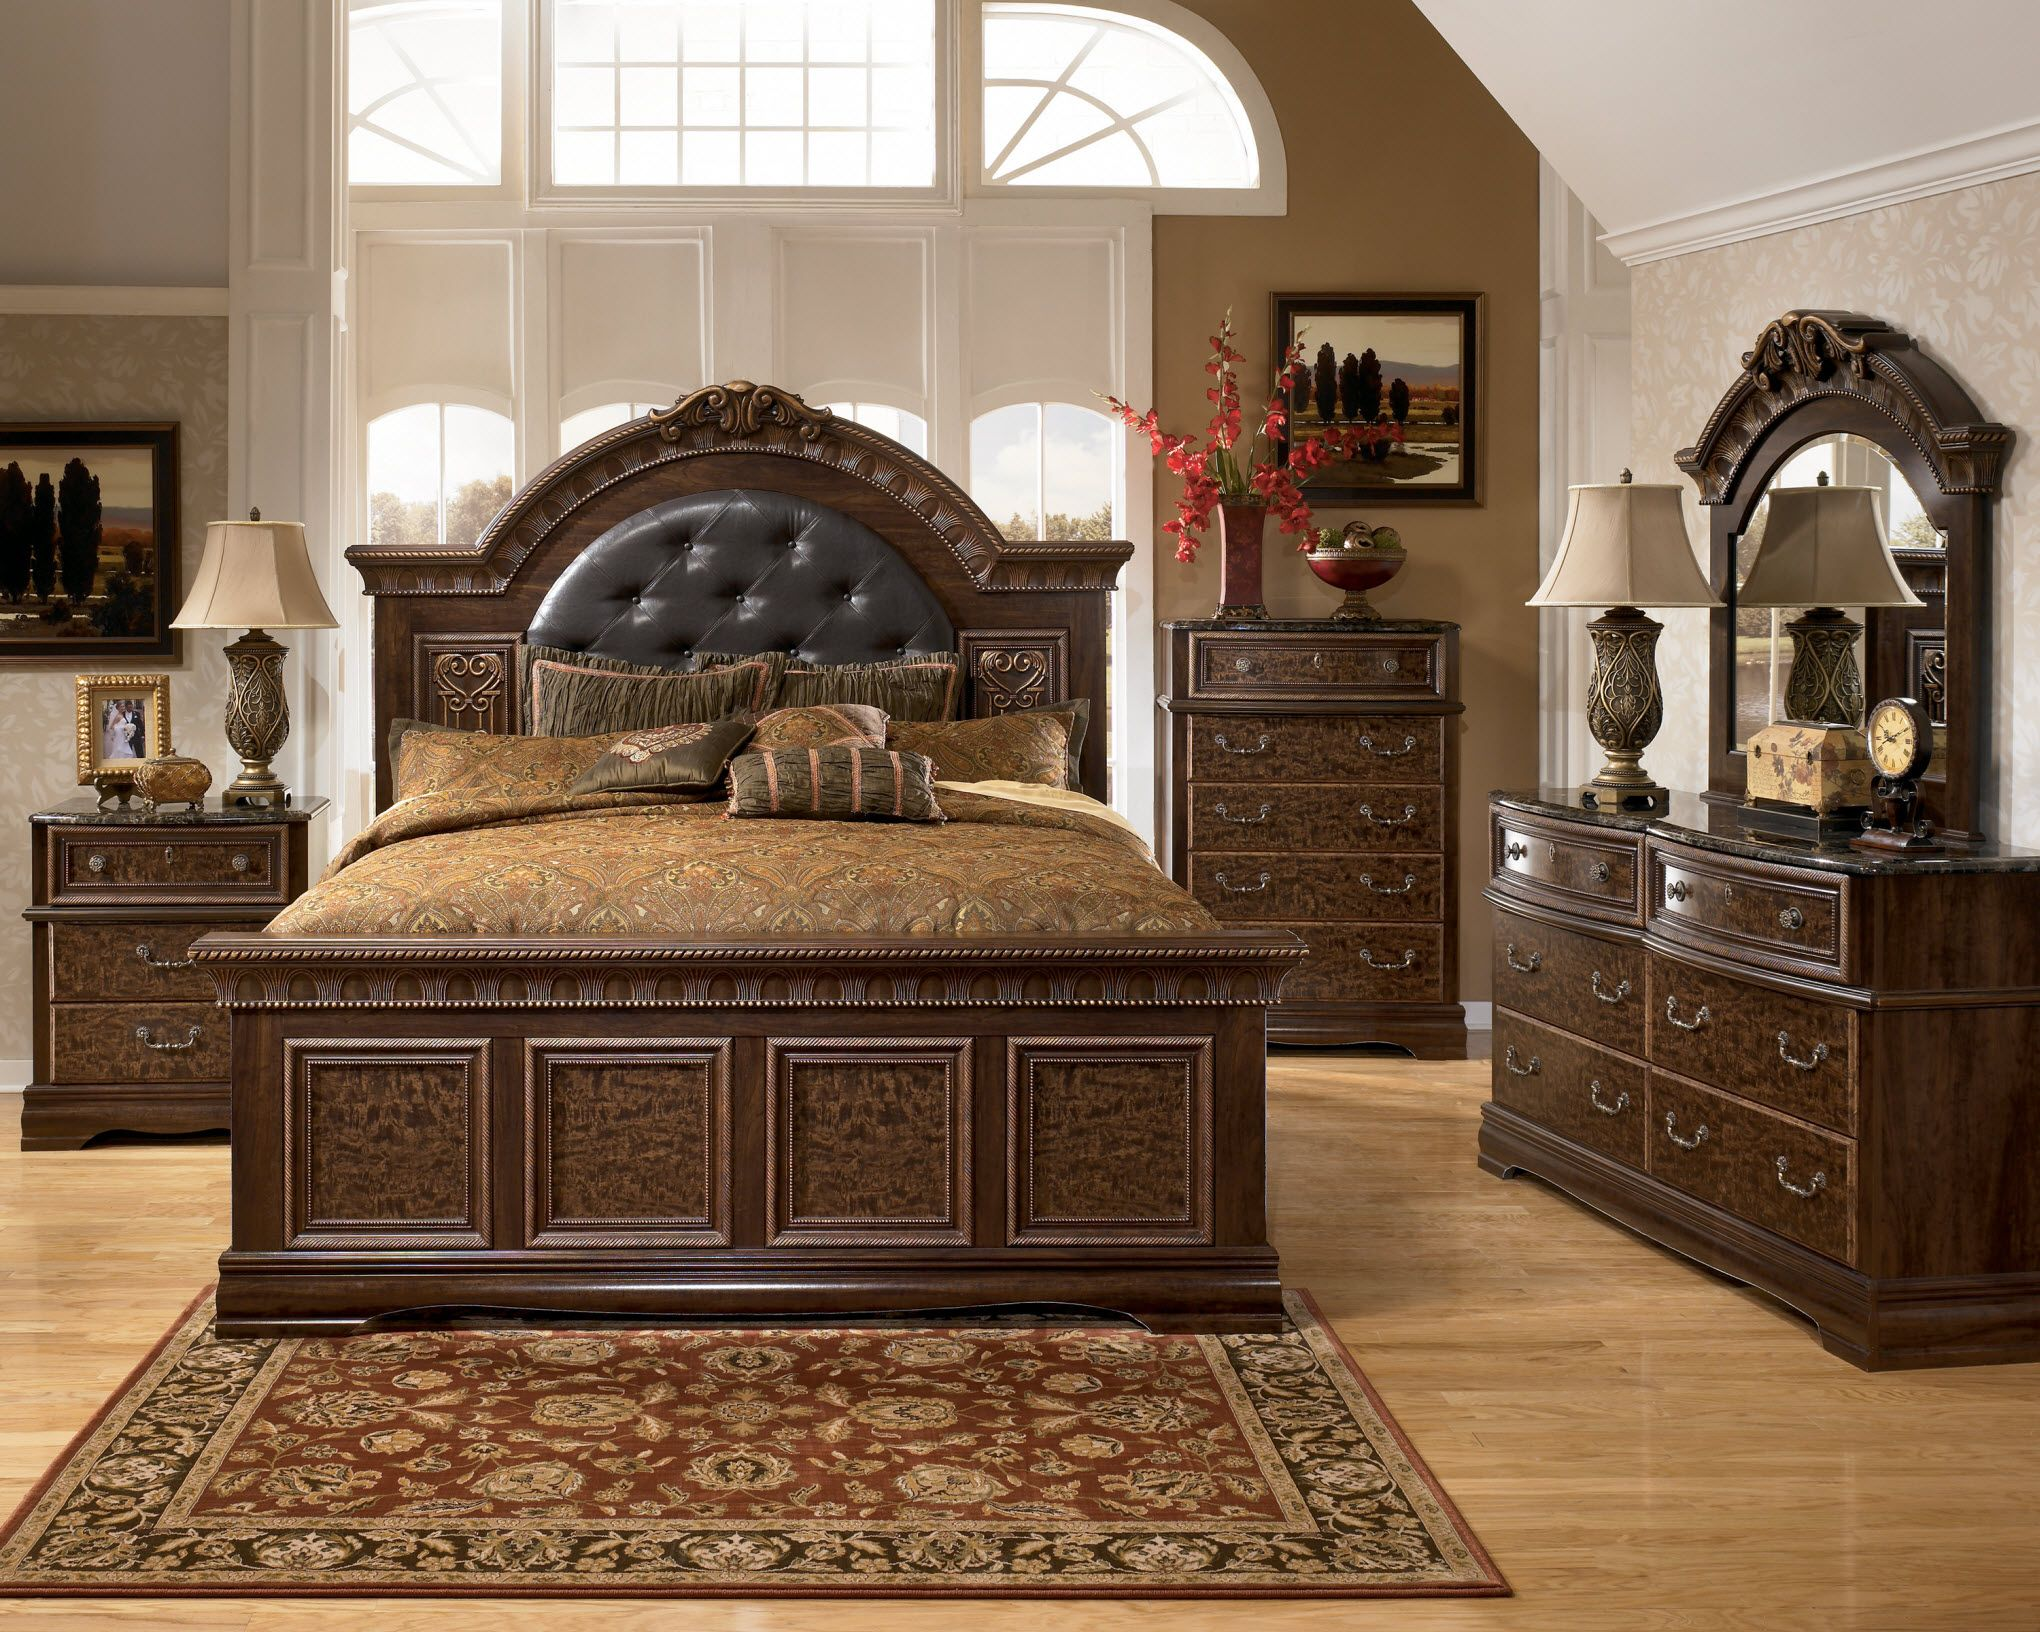 Cool good queen bedroom furniture sets for small home decoration